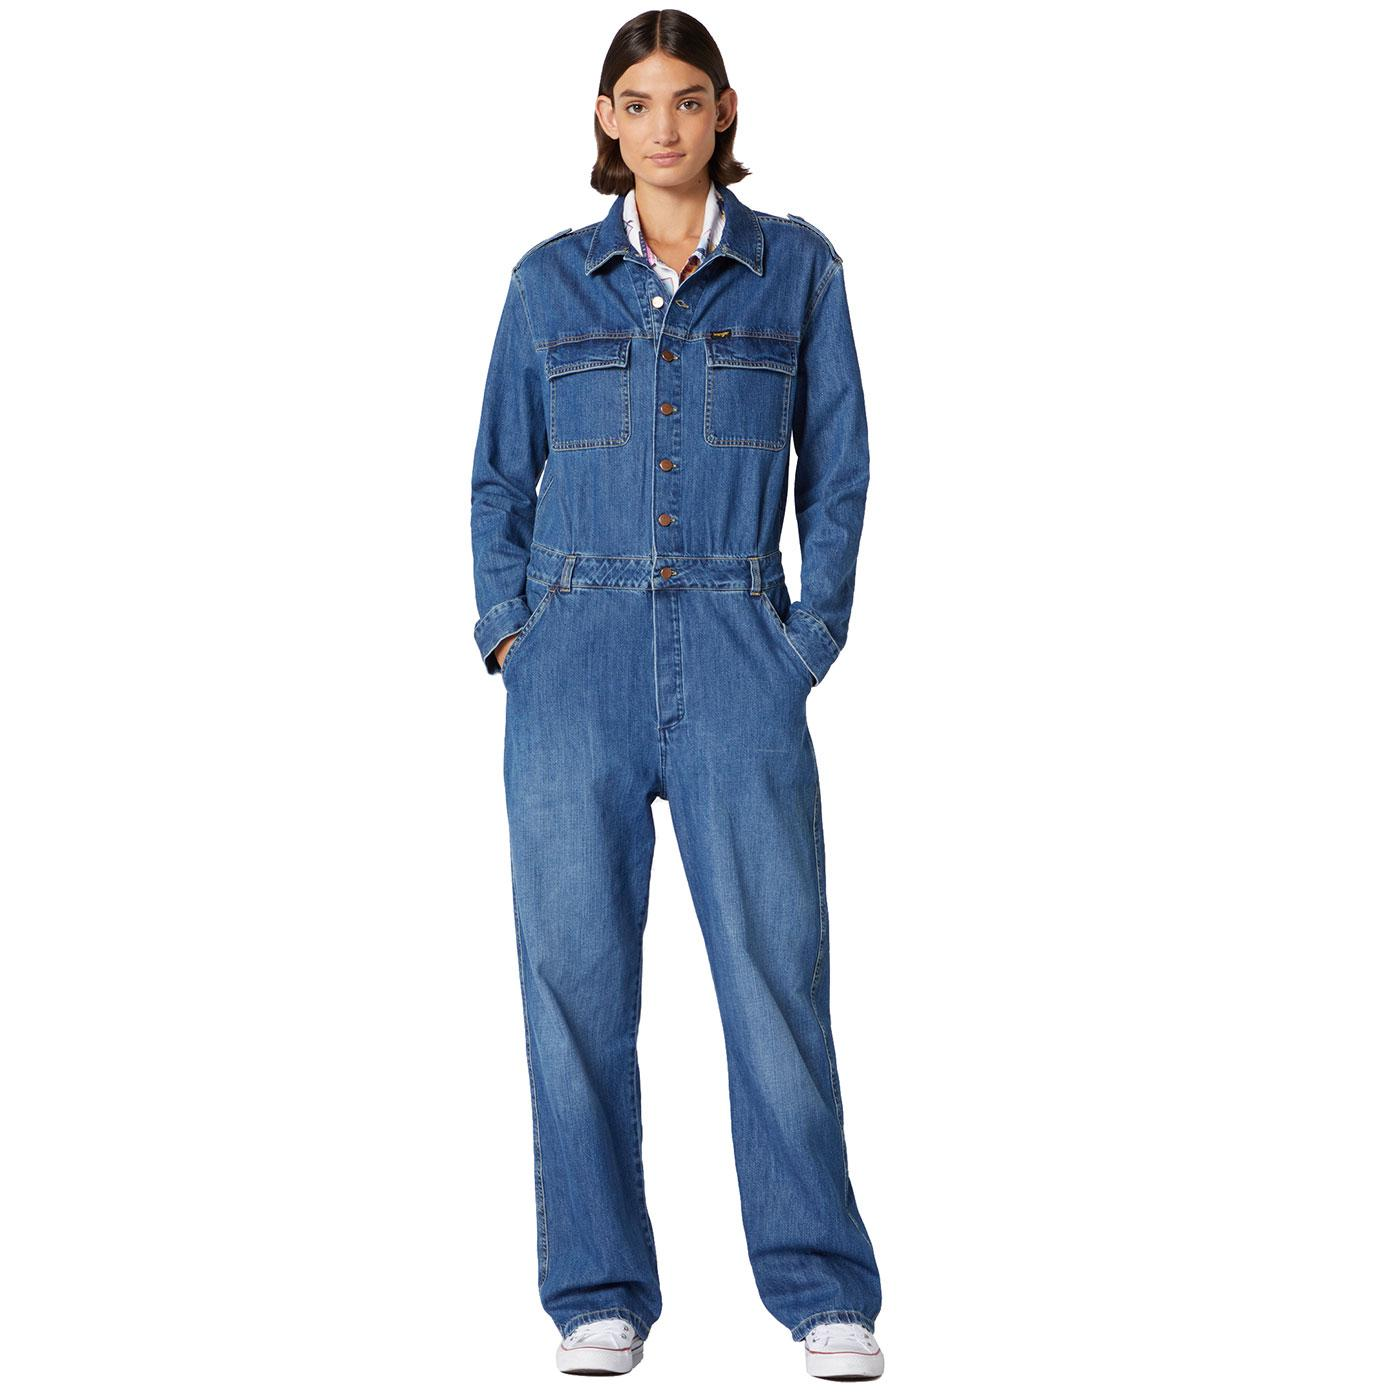 WRANGLER Women's Utility Jumpsuit - Summer Breeze